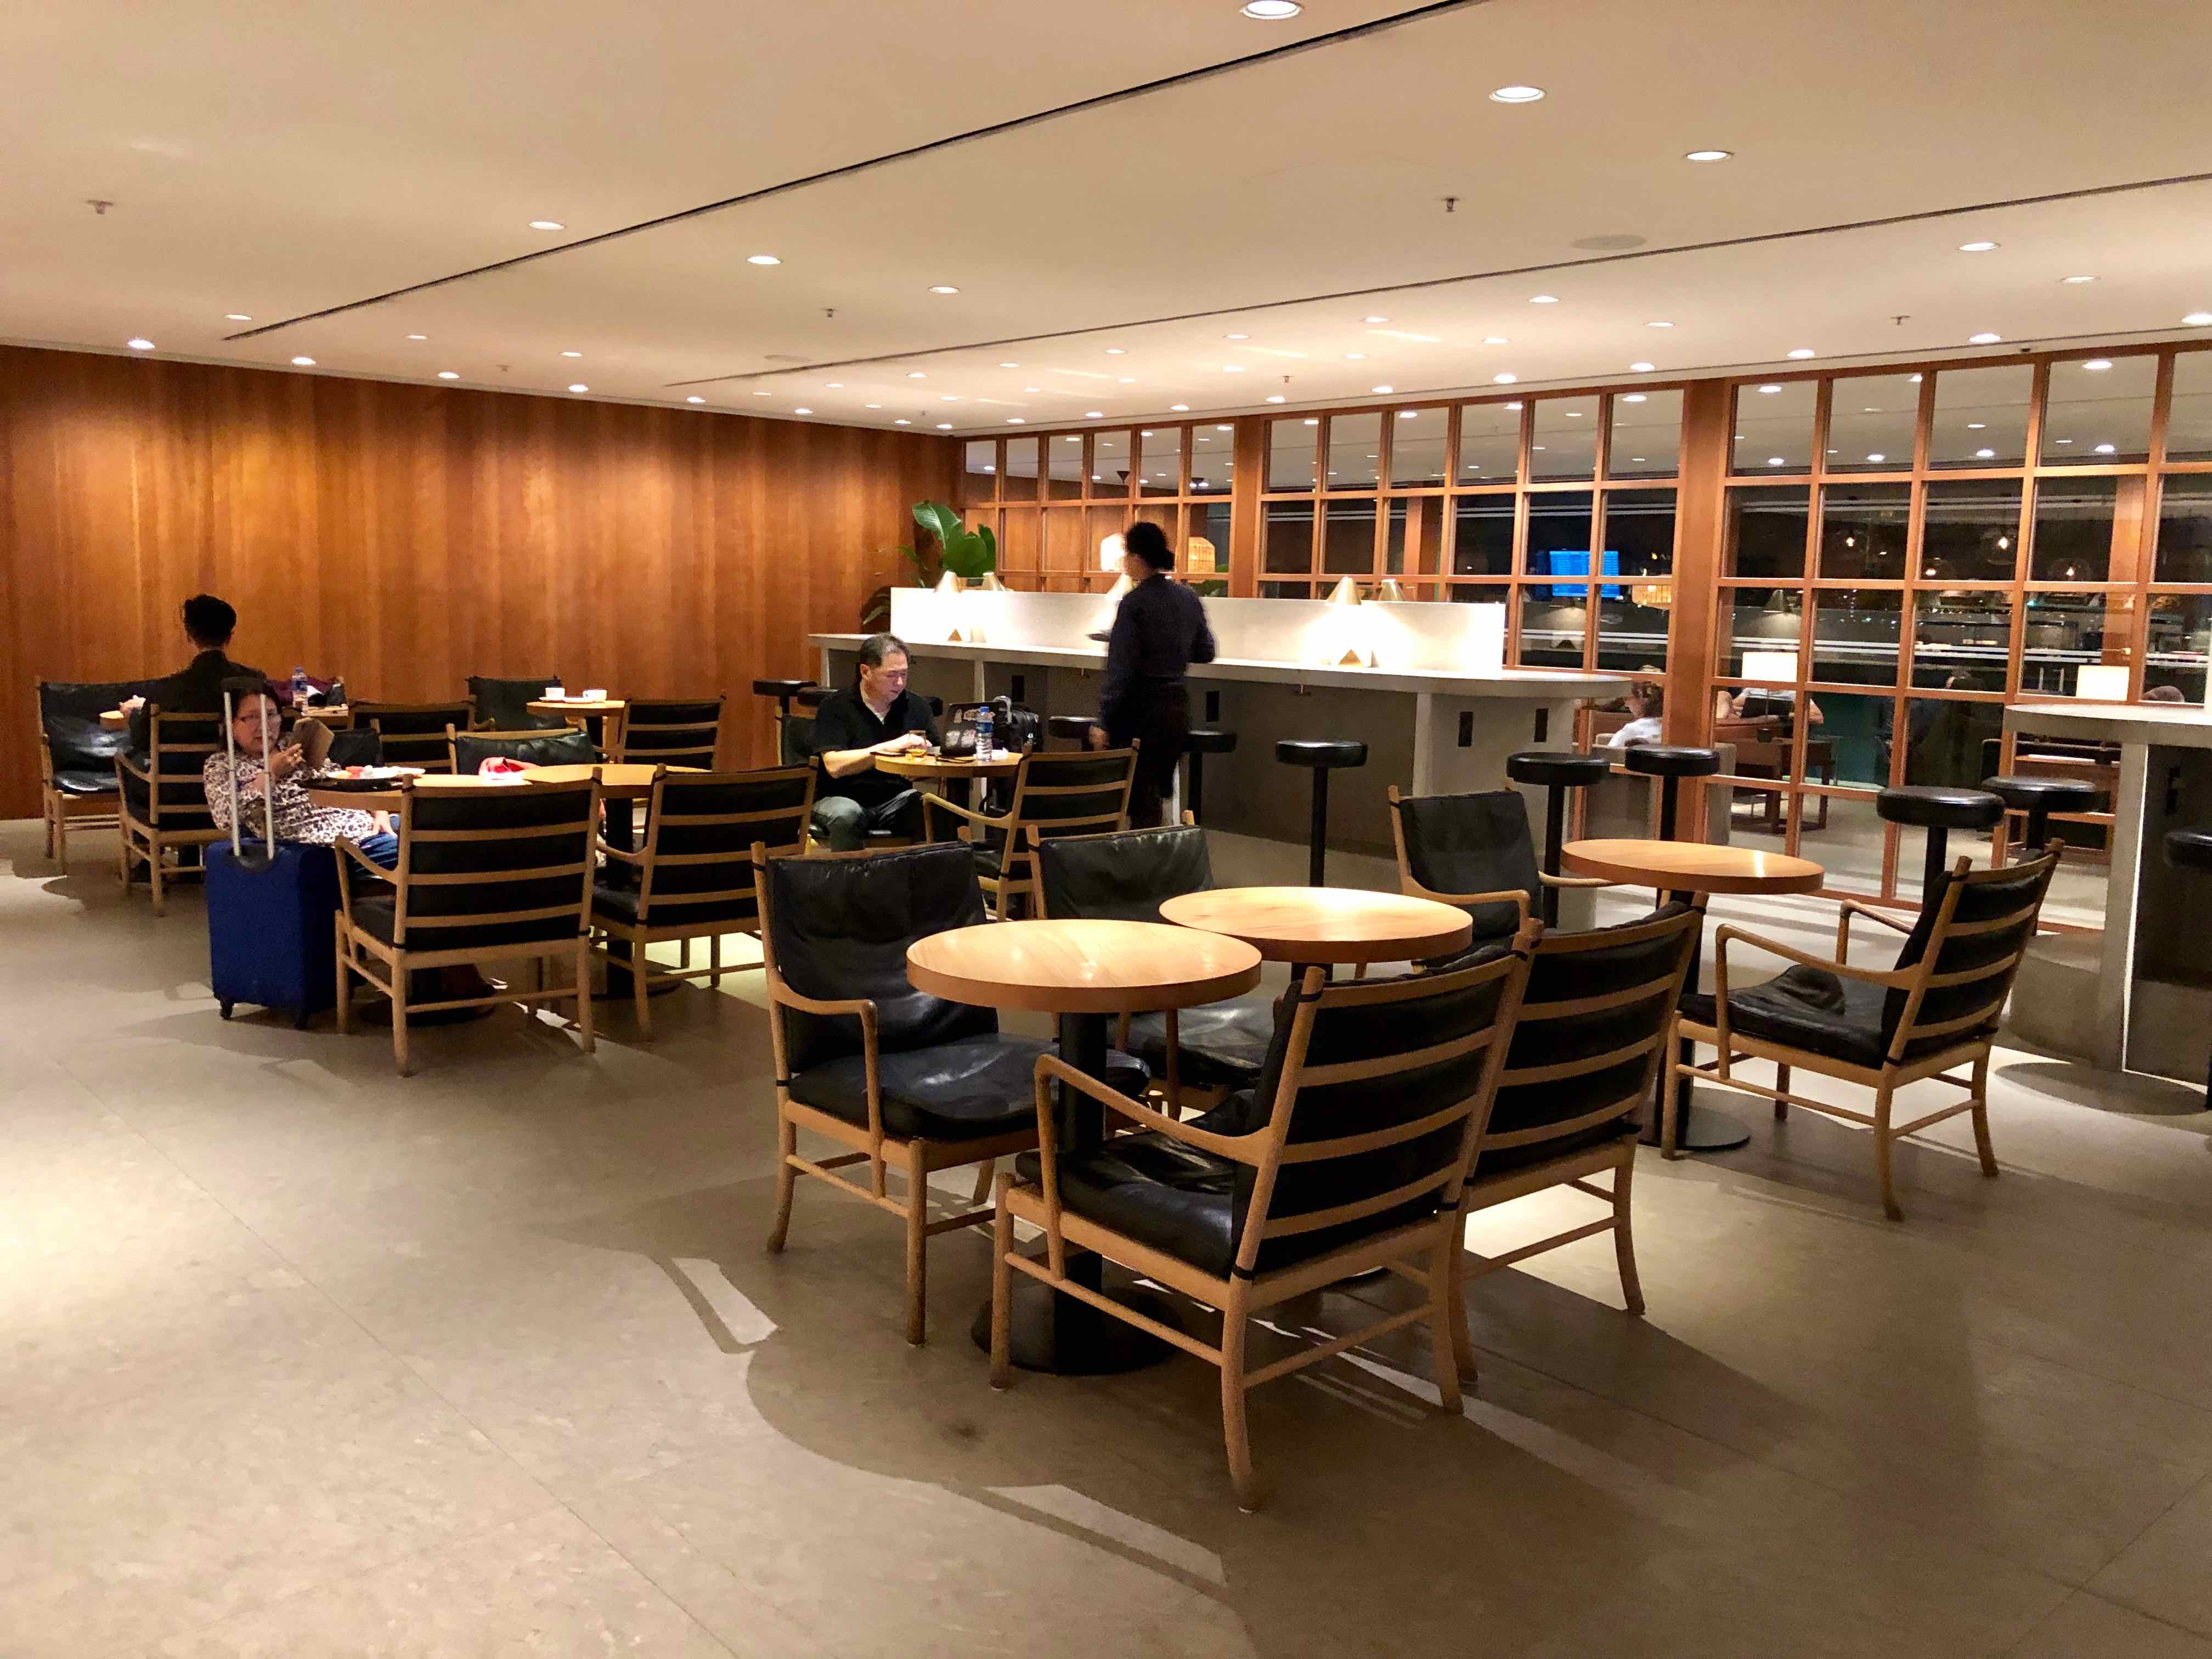 Cathay Pacific The Pier Business Class Lounge Hong Kong seating option